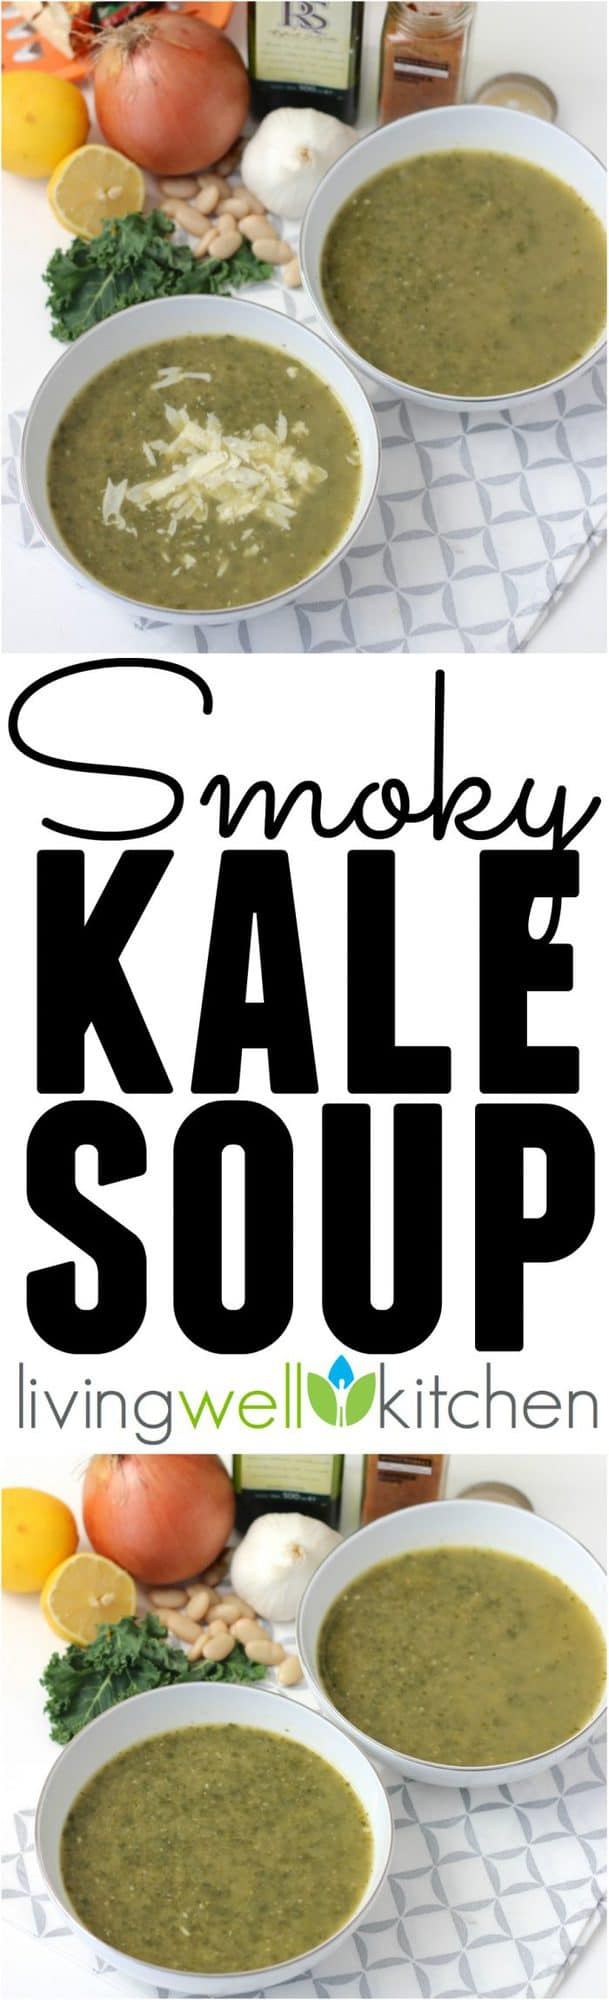 Smoked paprika gives a subtle smoky flavor to this vegan soup packed with kale. Smoky Kale Soup recipe from @memeinge is a great lunch or dinner idea that fits any lifestyle (vegan, gluten free, dairy free, bacon-lover, etc.)